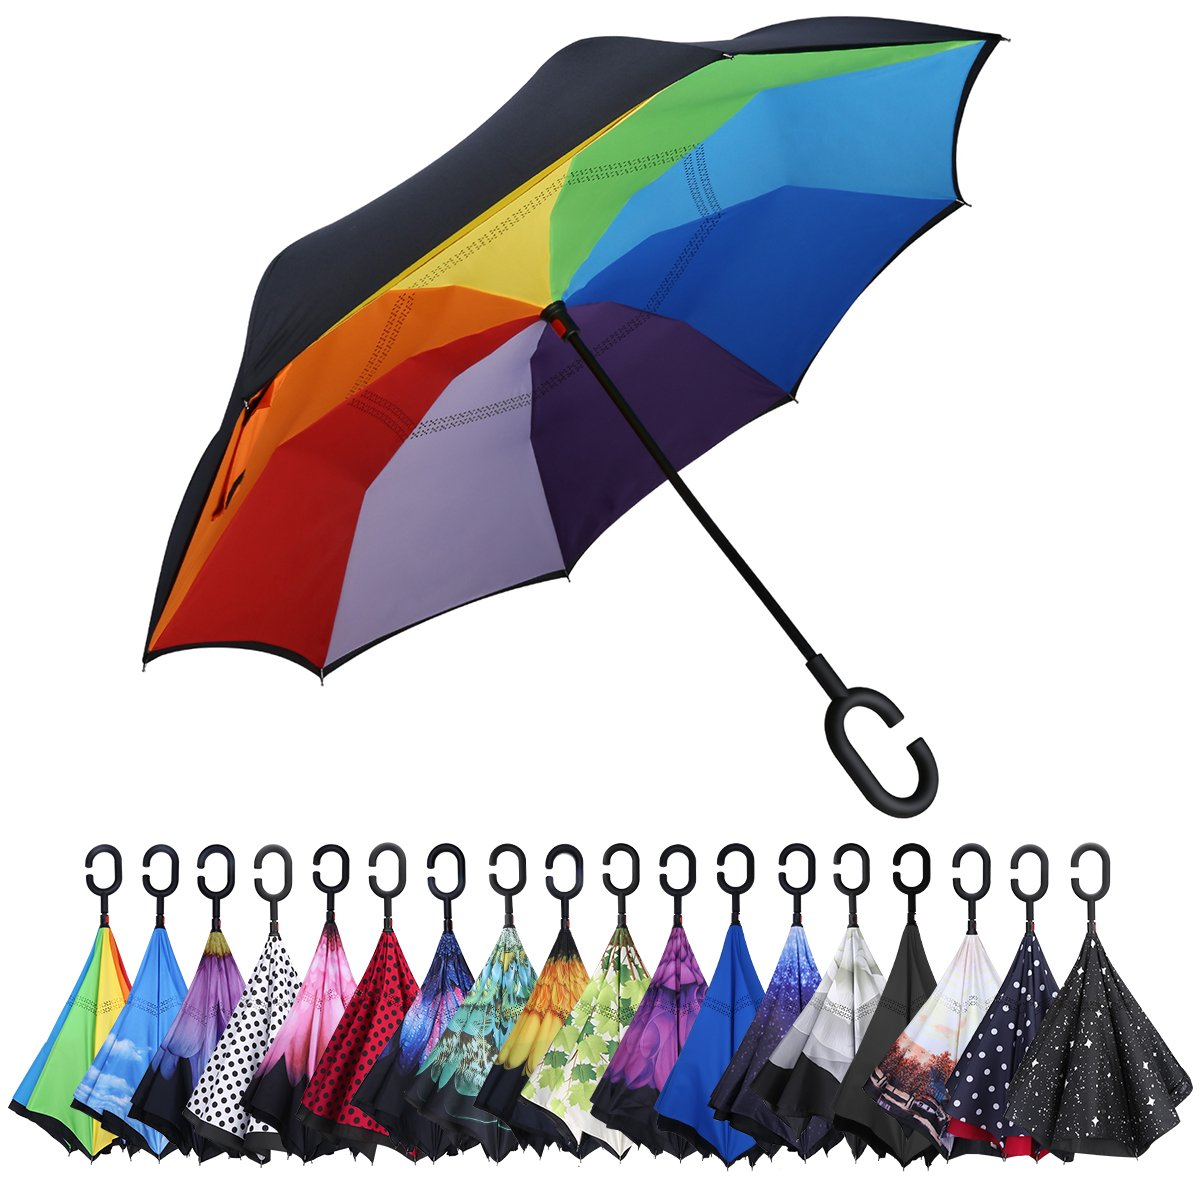 74647d1170c7a G4Free Double Layer Inverted Umbrella Cars Reverse Open Folding Umbrellas,  Windproof UV Protection Large Upside